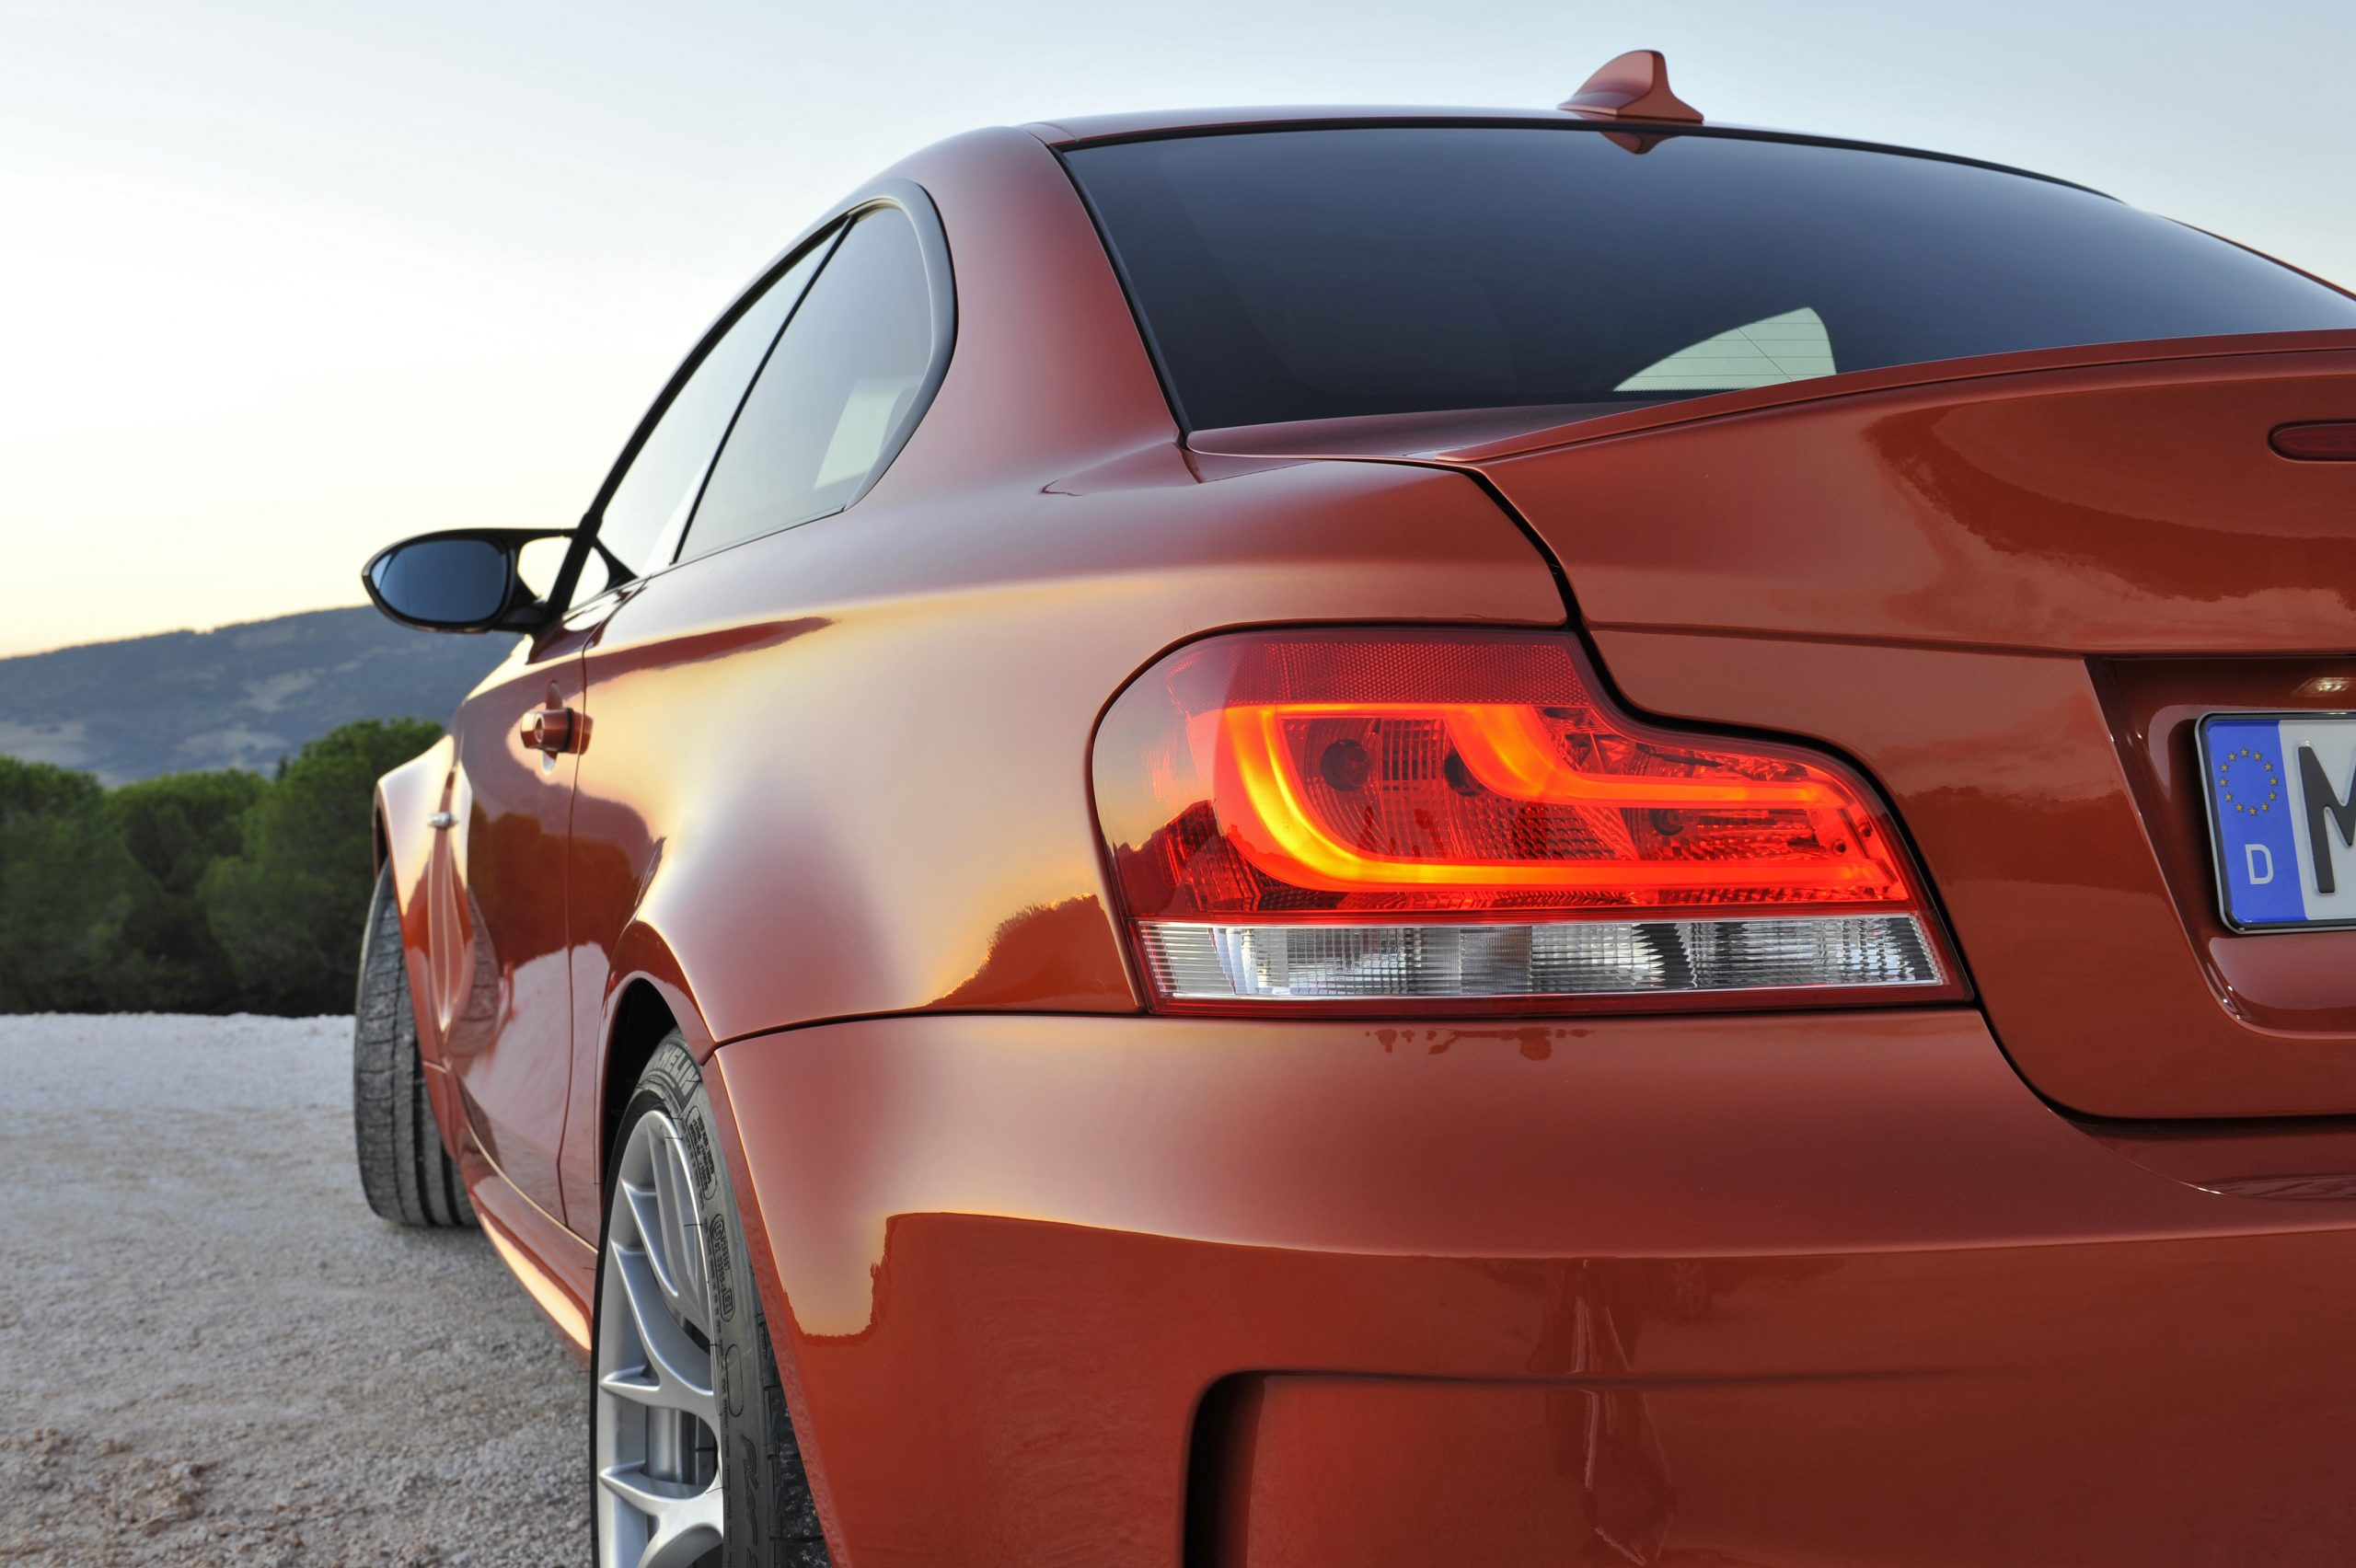 BMW 1 Series M Coupe rear side taillight